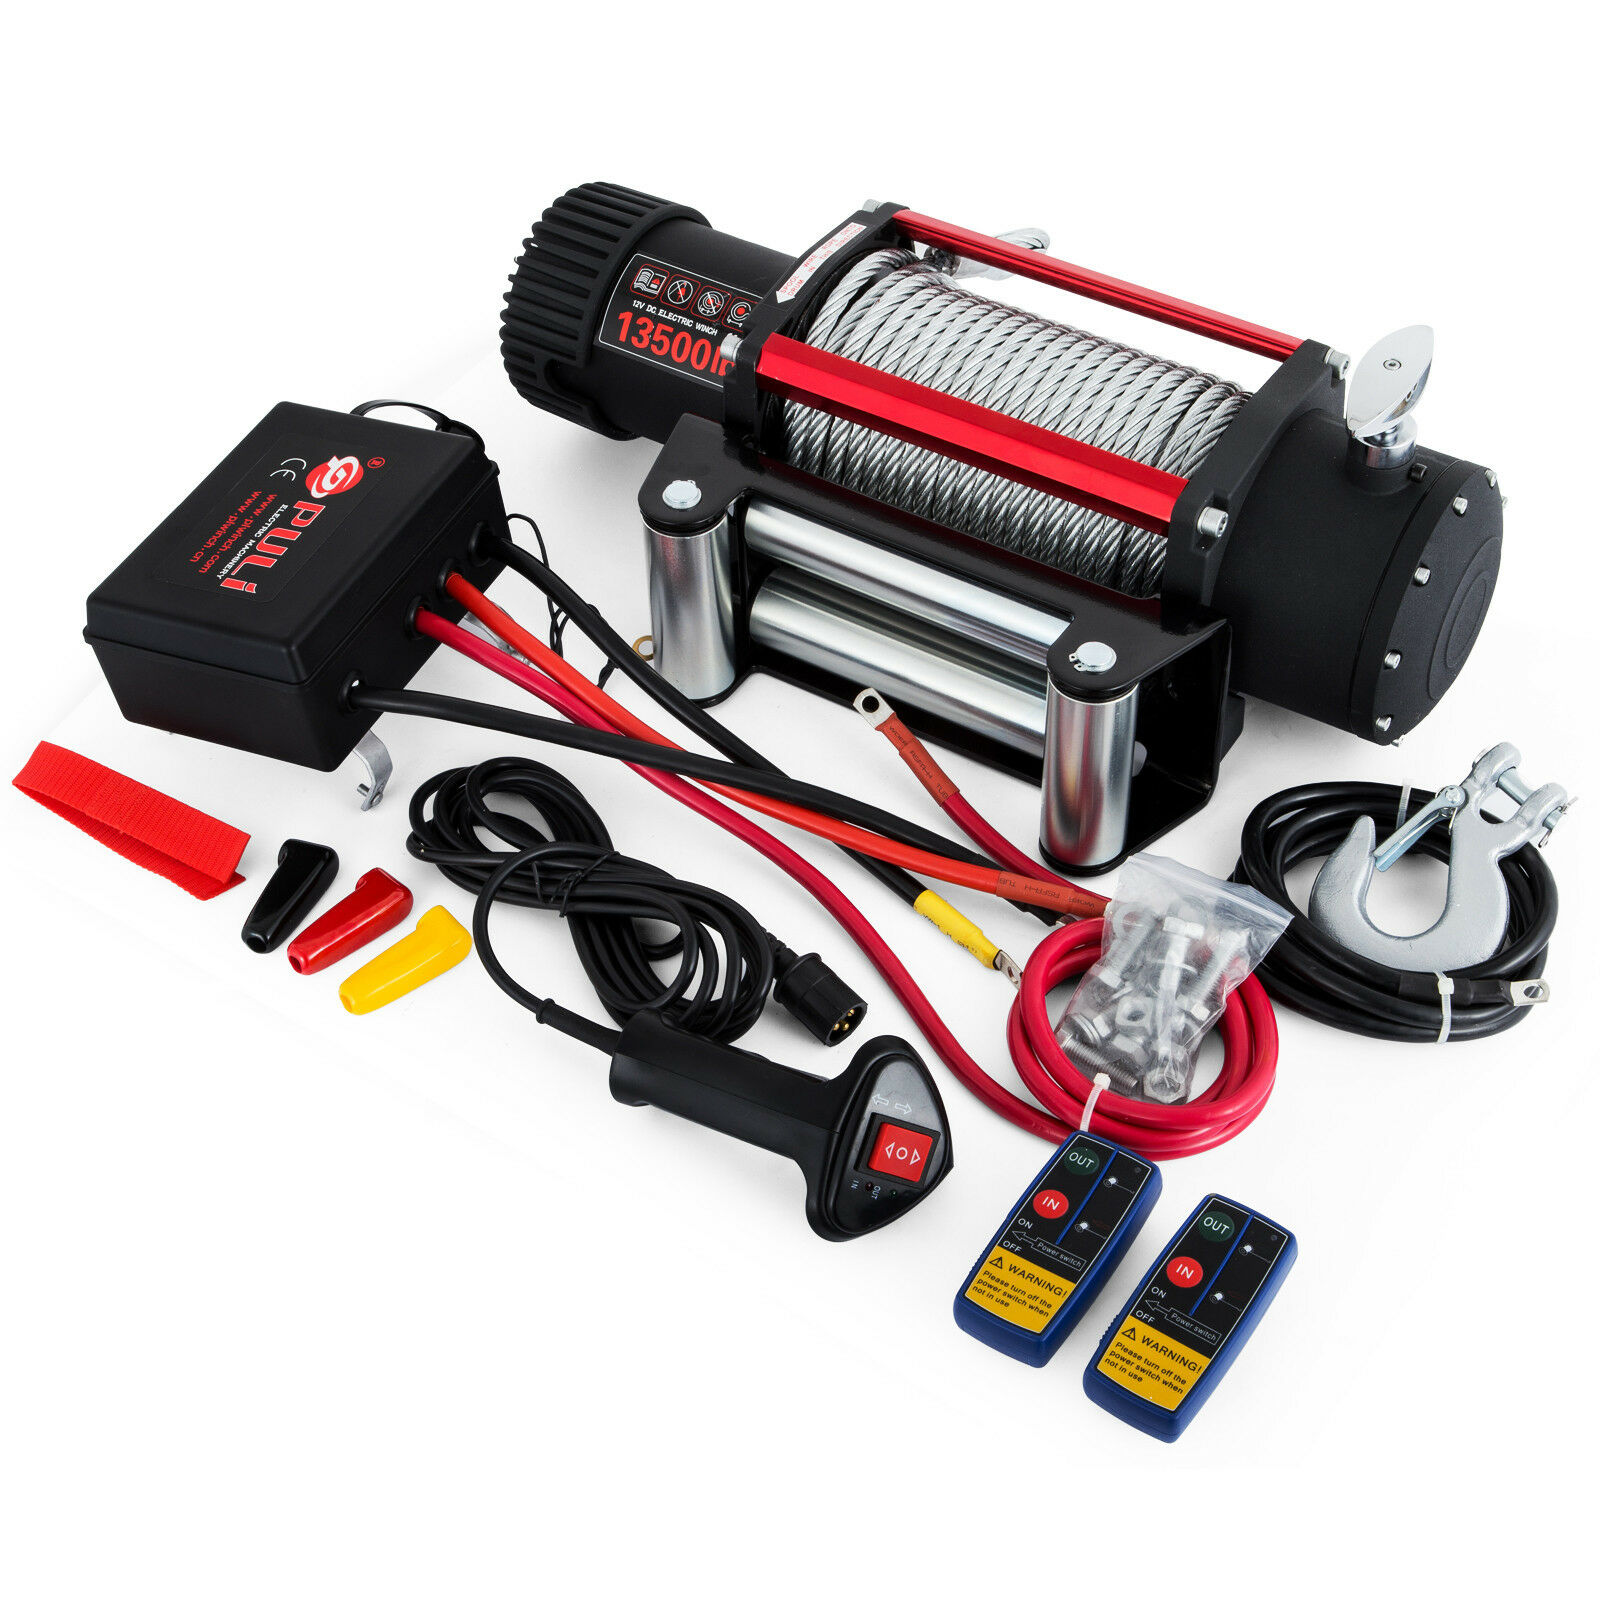 Electric ATV Recovery Winch 13500LBS 12v Electric ATV Recovery Winch Steel Cable With Radio Remote Control Free Shipping